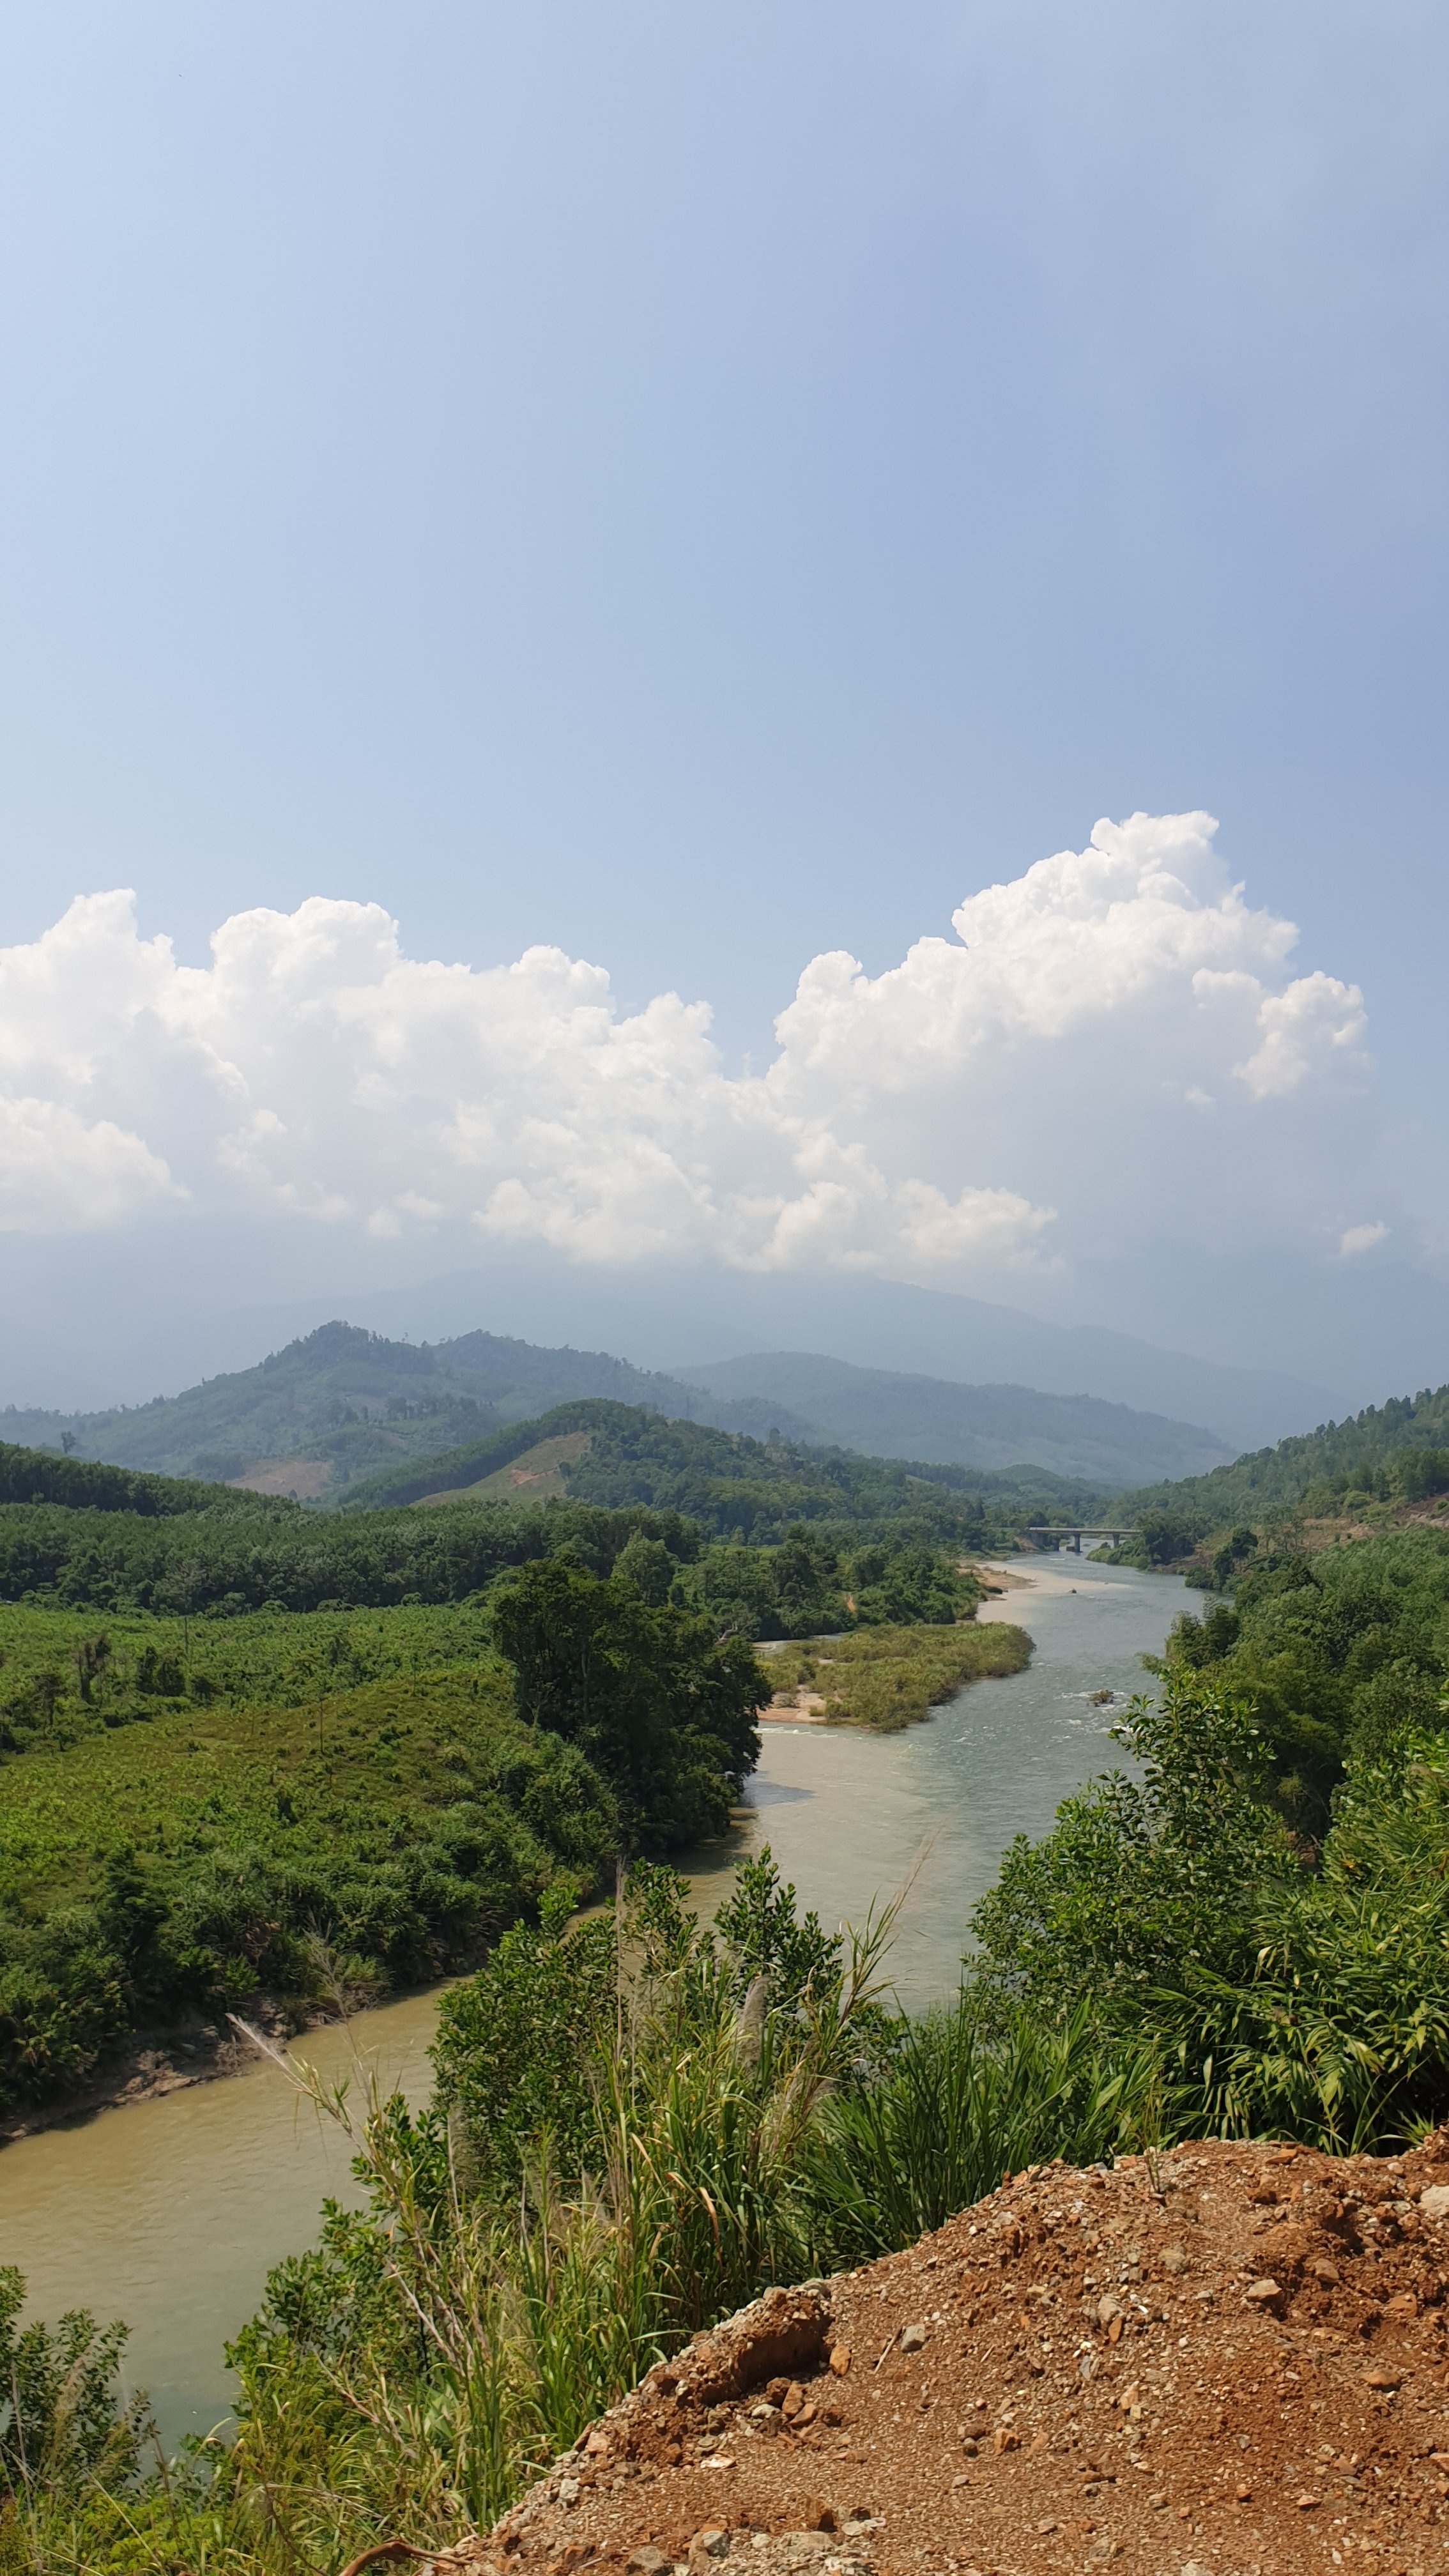 View of river valley in Vietnam with trees and mountains in the background